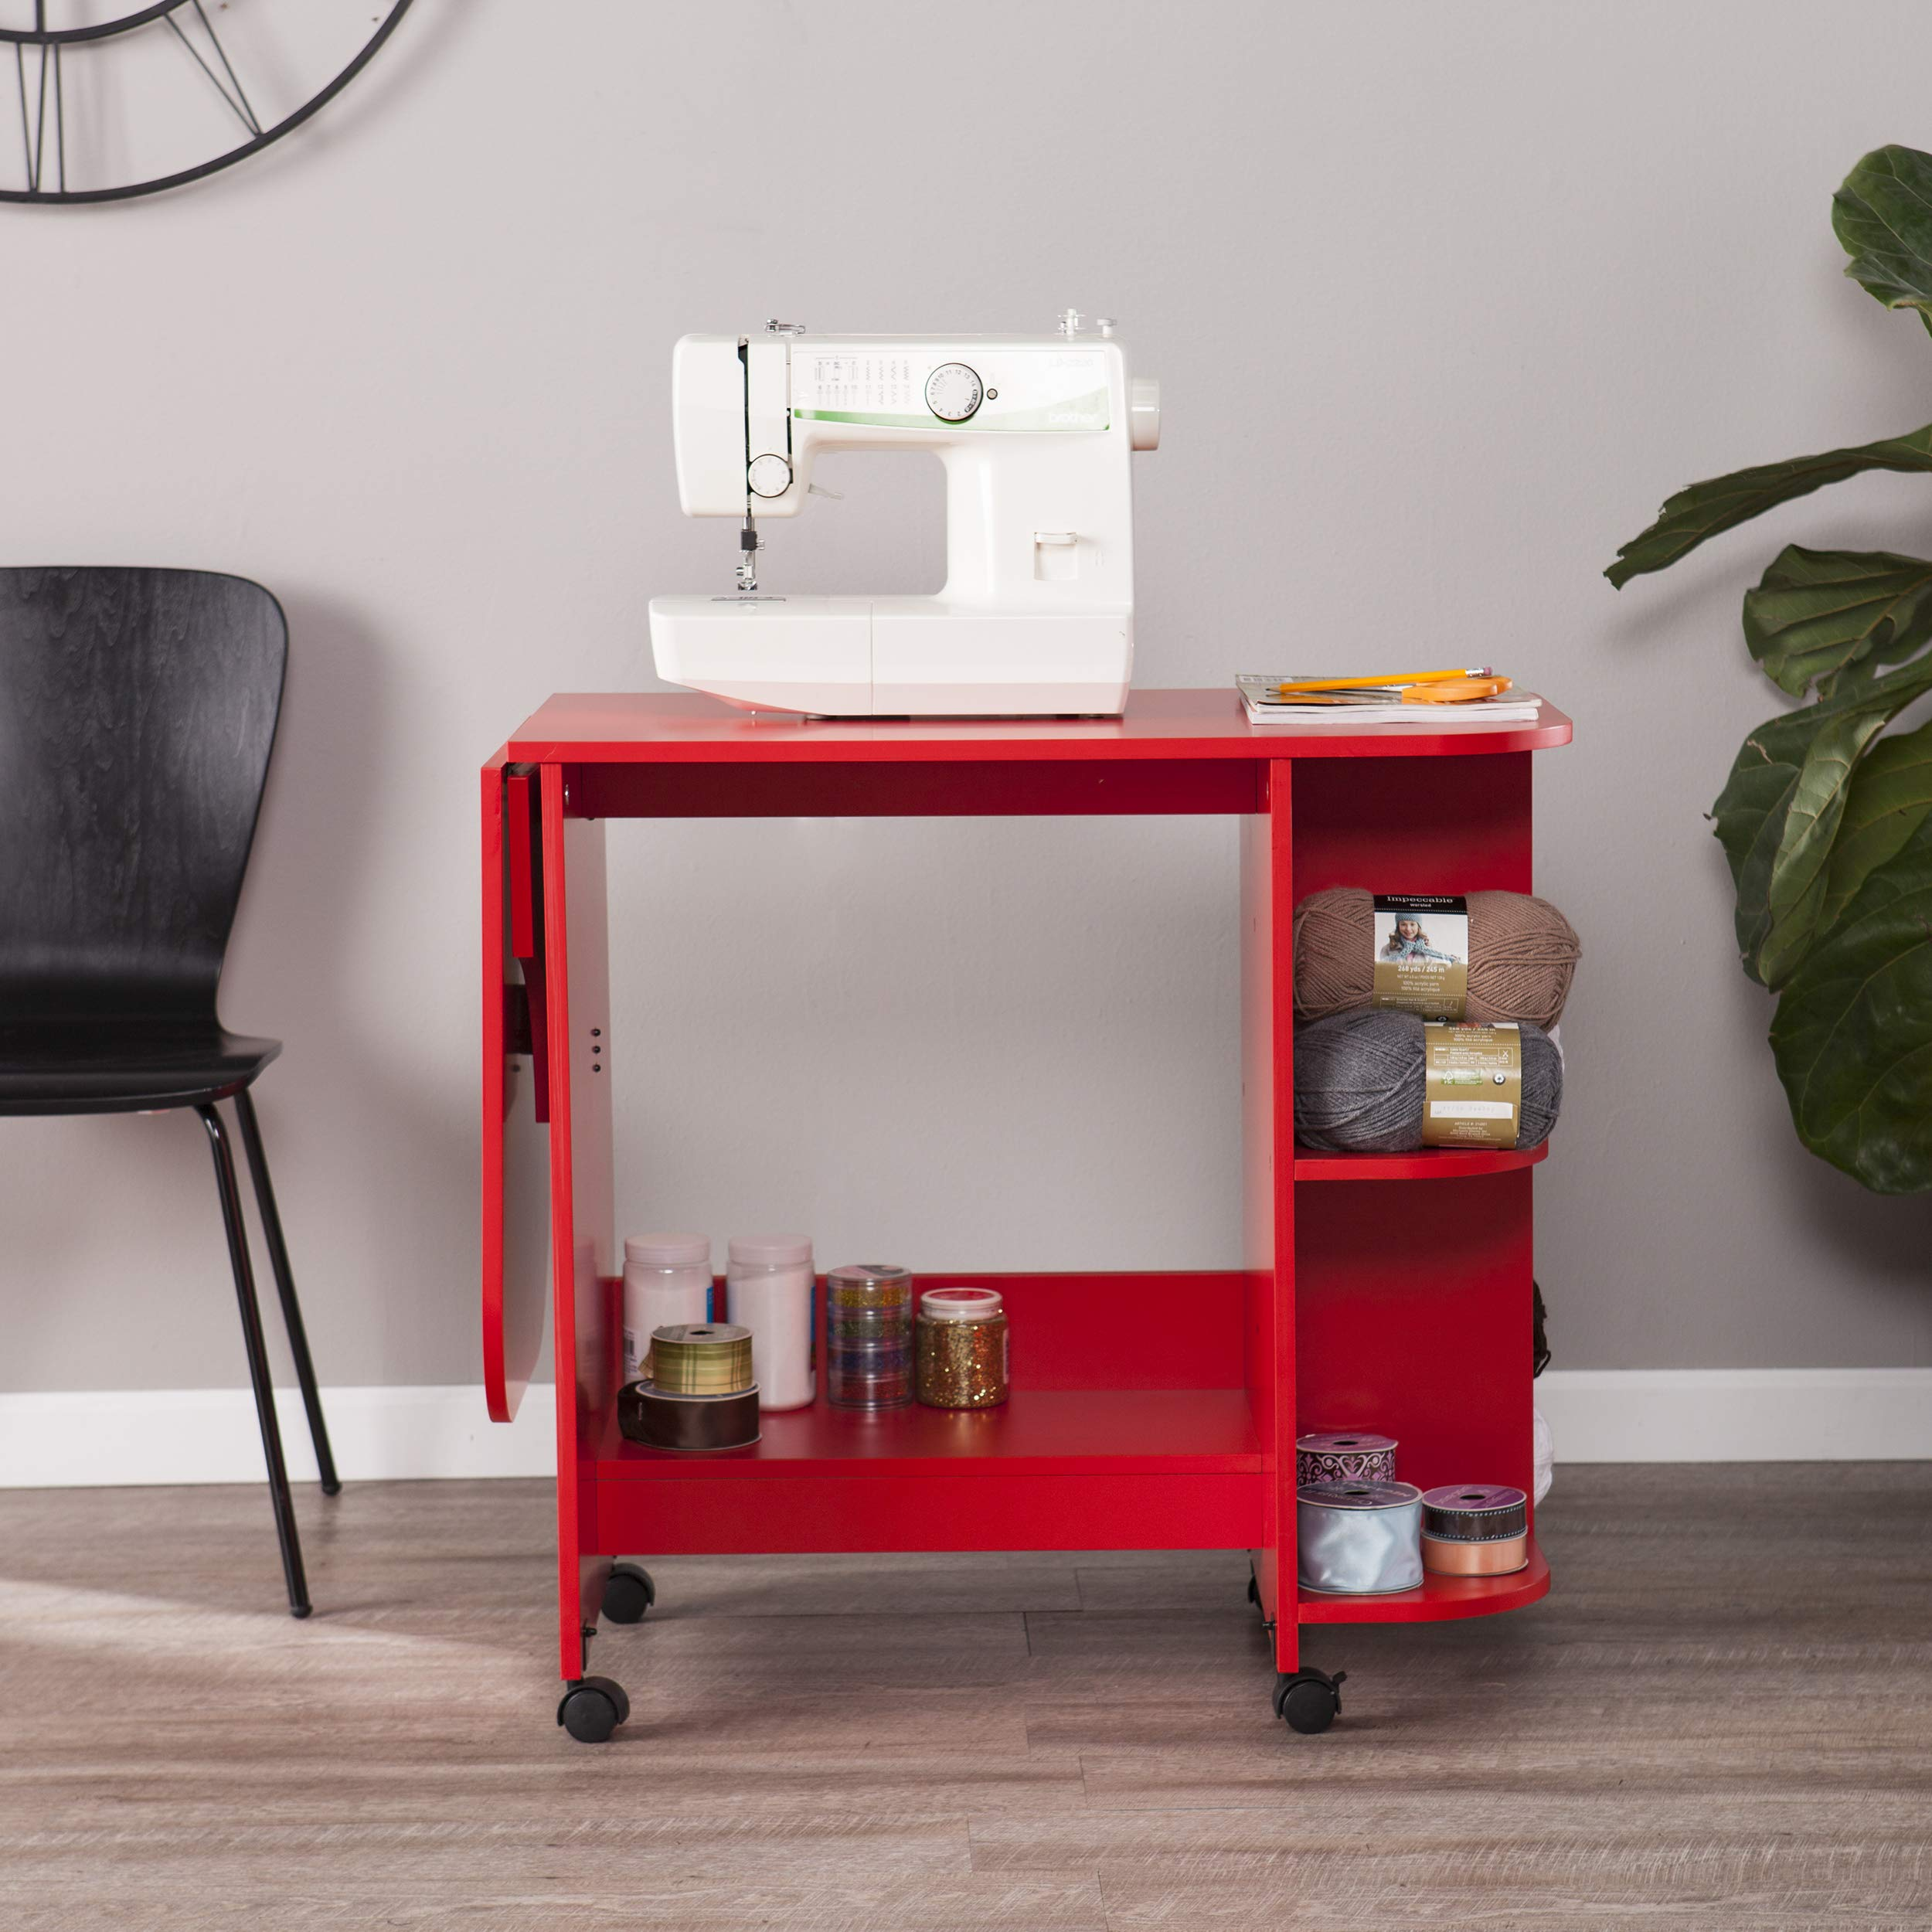 Southern Enterprises AMZ5667ZH Expandable Rolling Sewing Station Craft Table, Red by Southern Enterprises